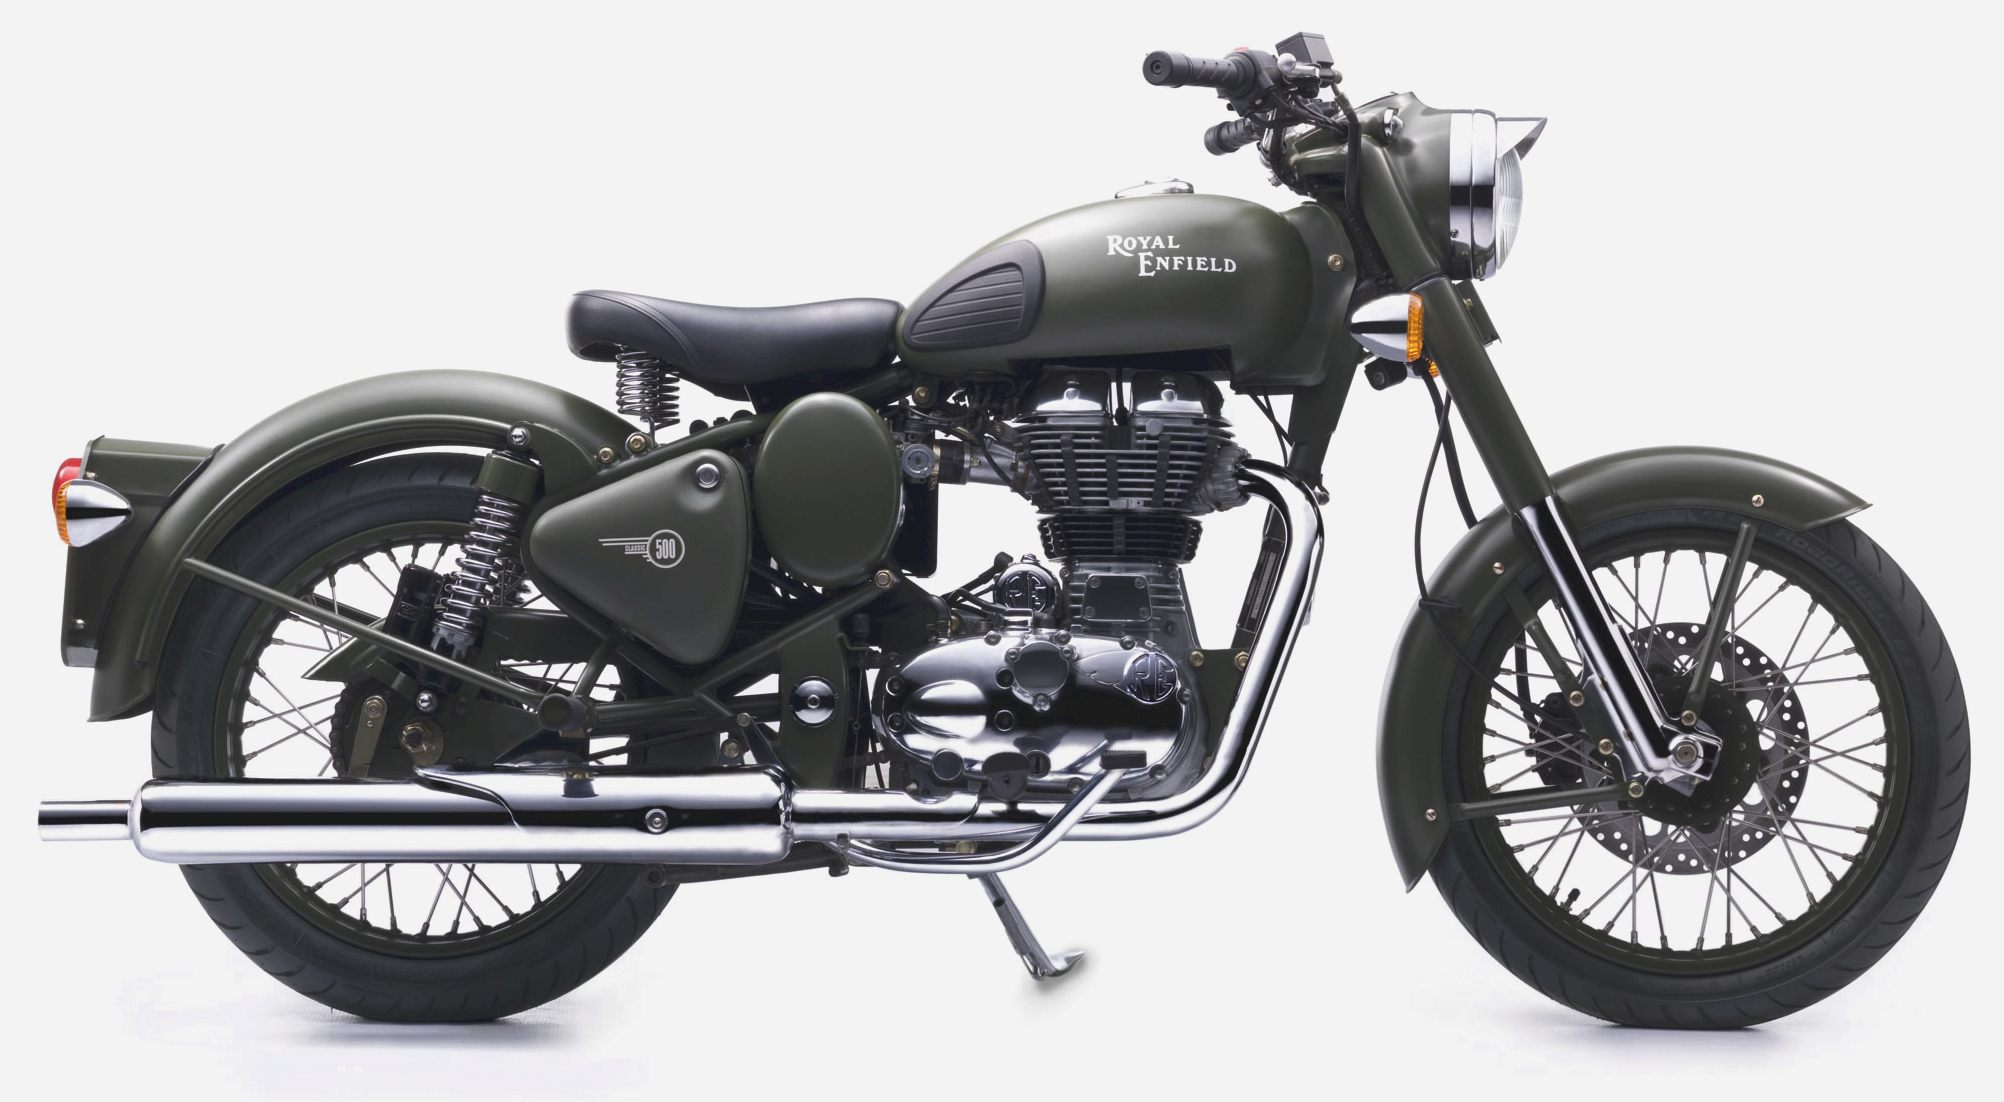 Royal Enfield Bullet 500 Army 1995 images #122803